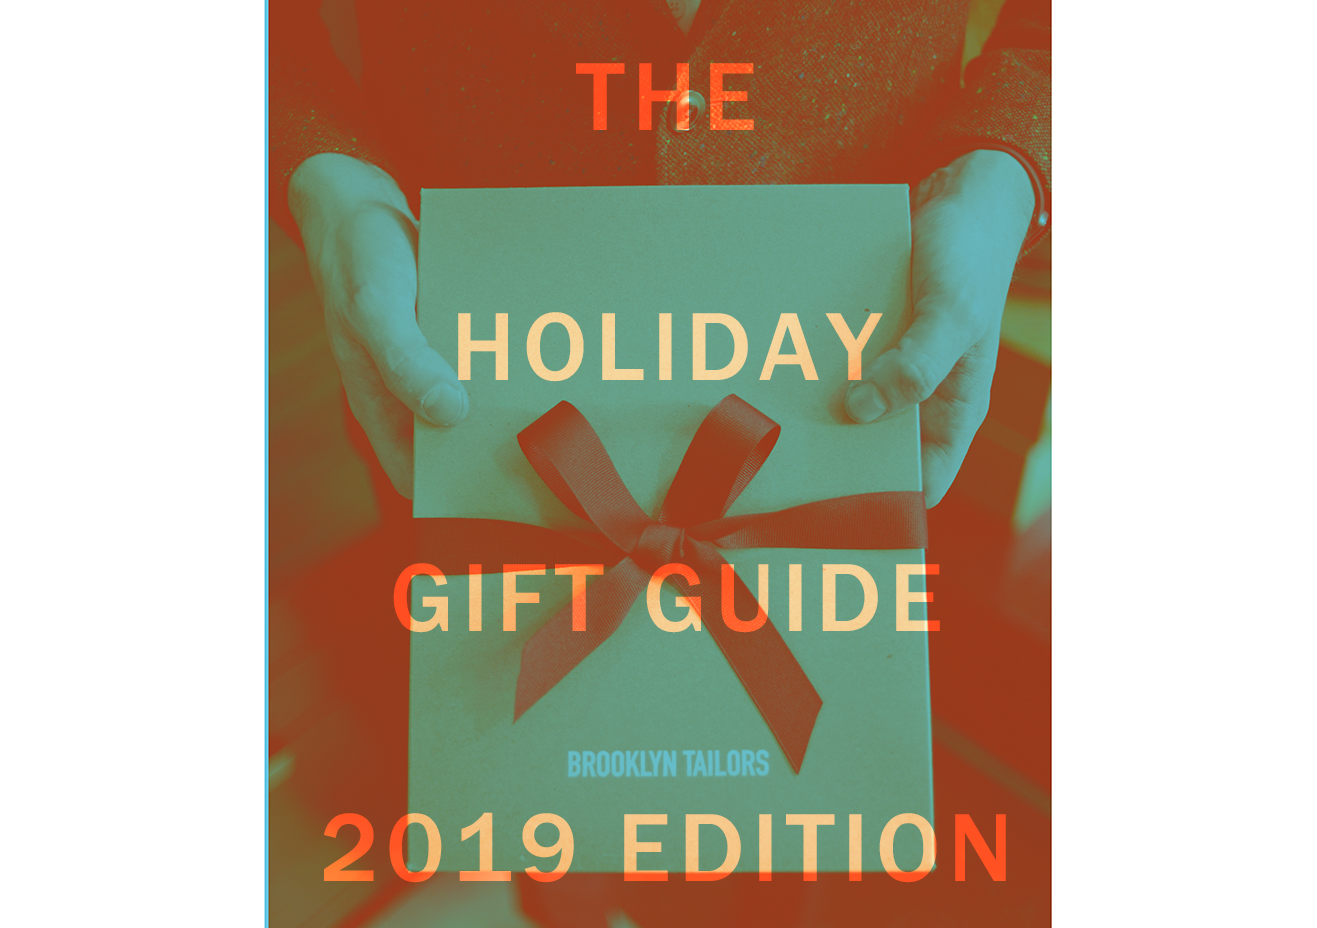 The Brooklyn Tailors Holiday Gift Guide - 2019 Edition